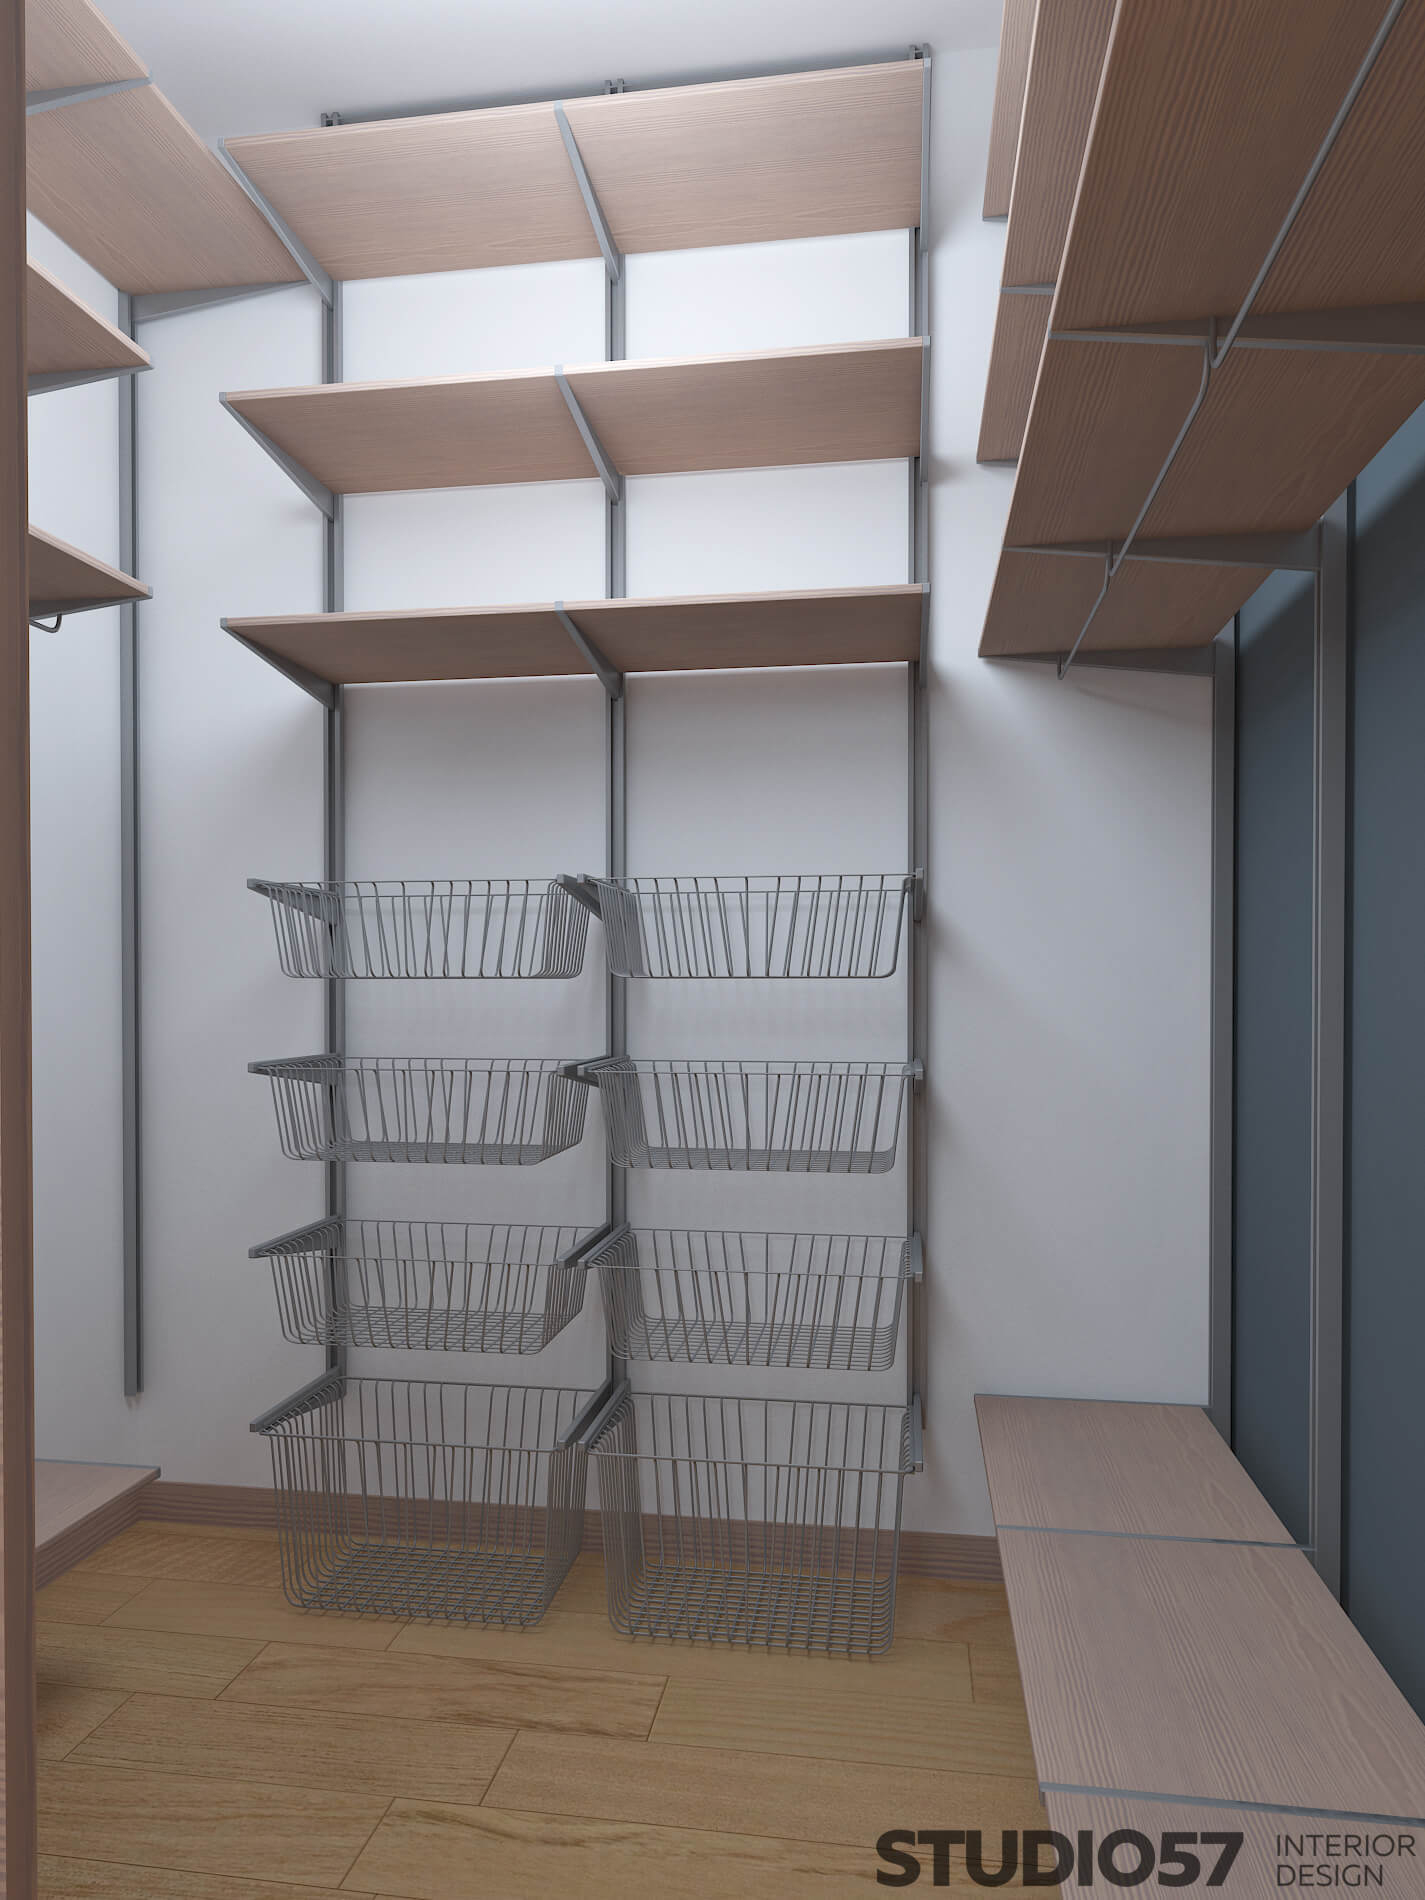 Visualization of a dressing room without cabinets